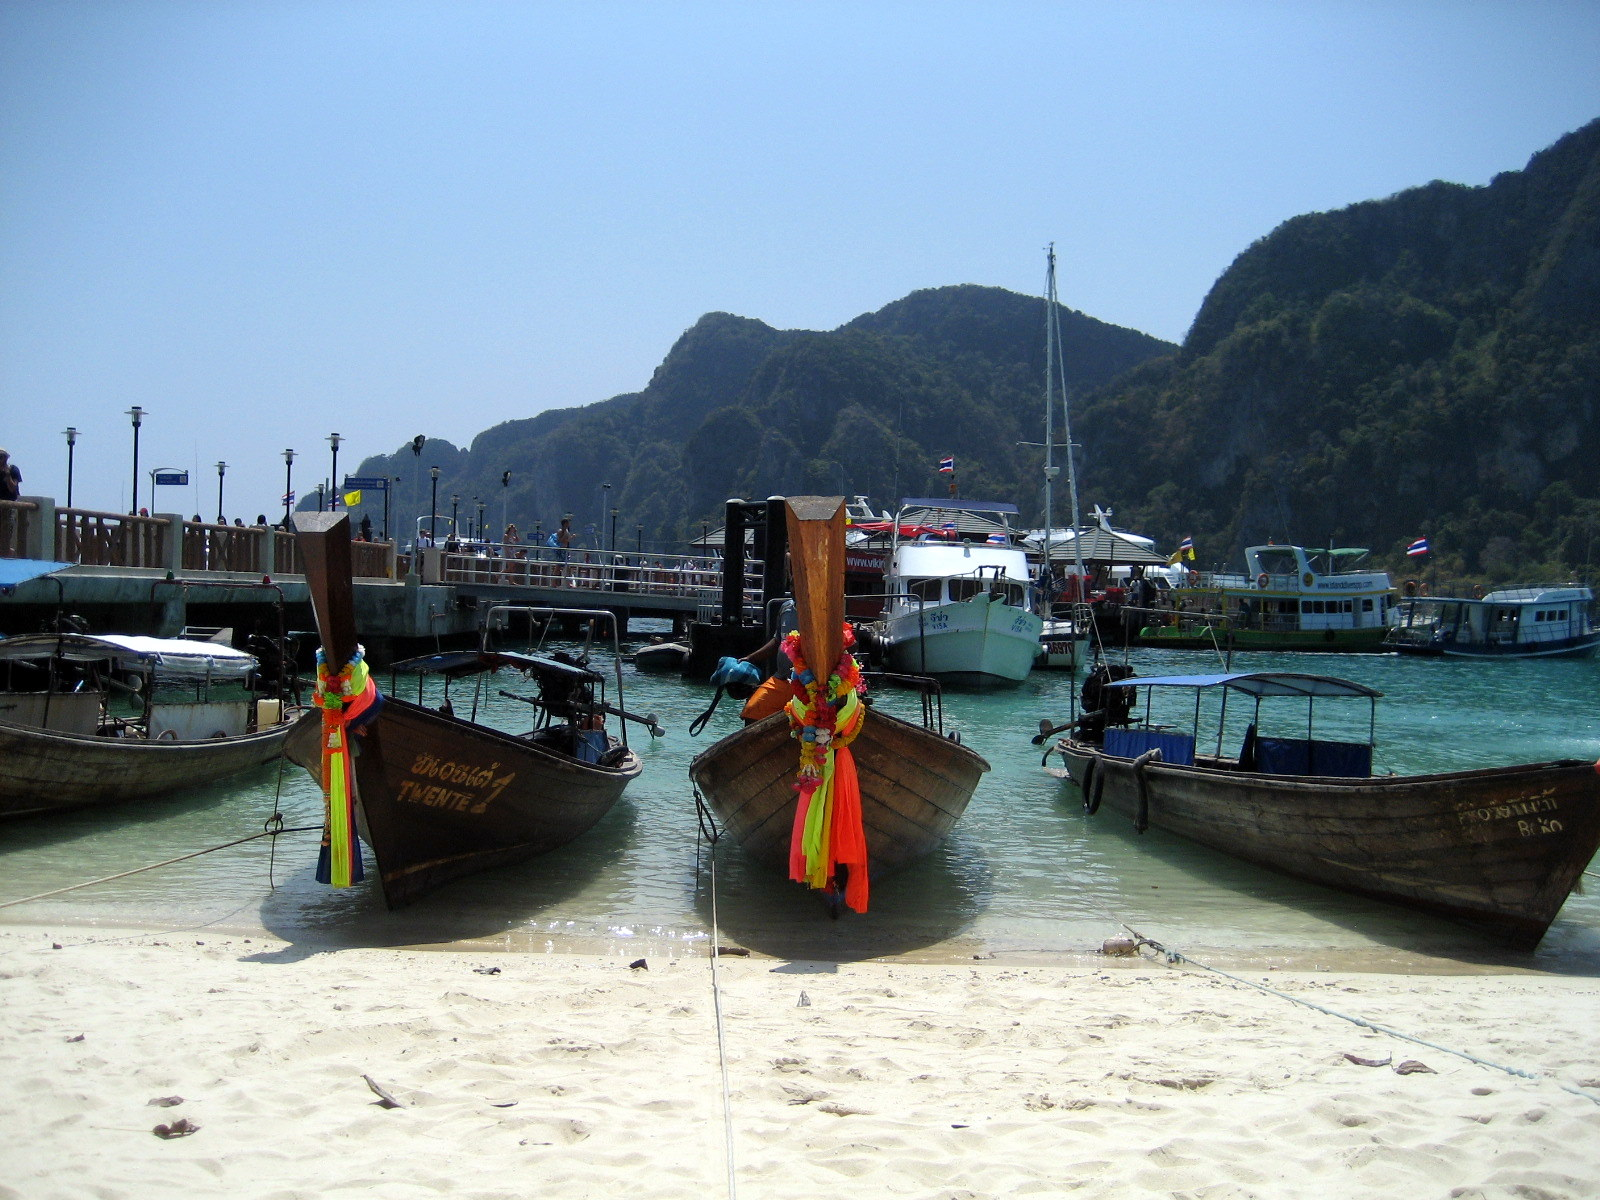 Amazing Thailand with the Tonsai Bay